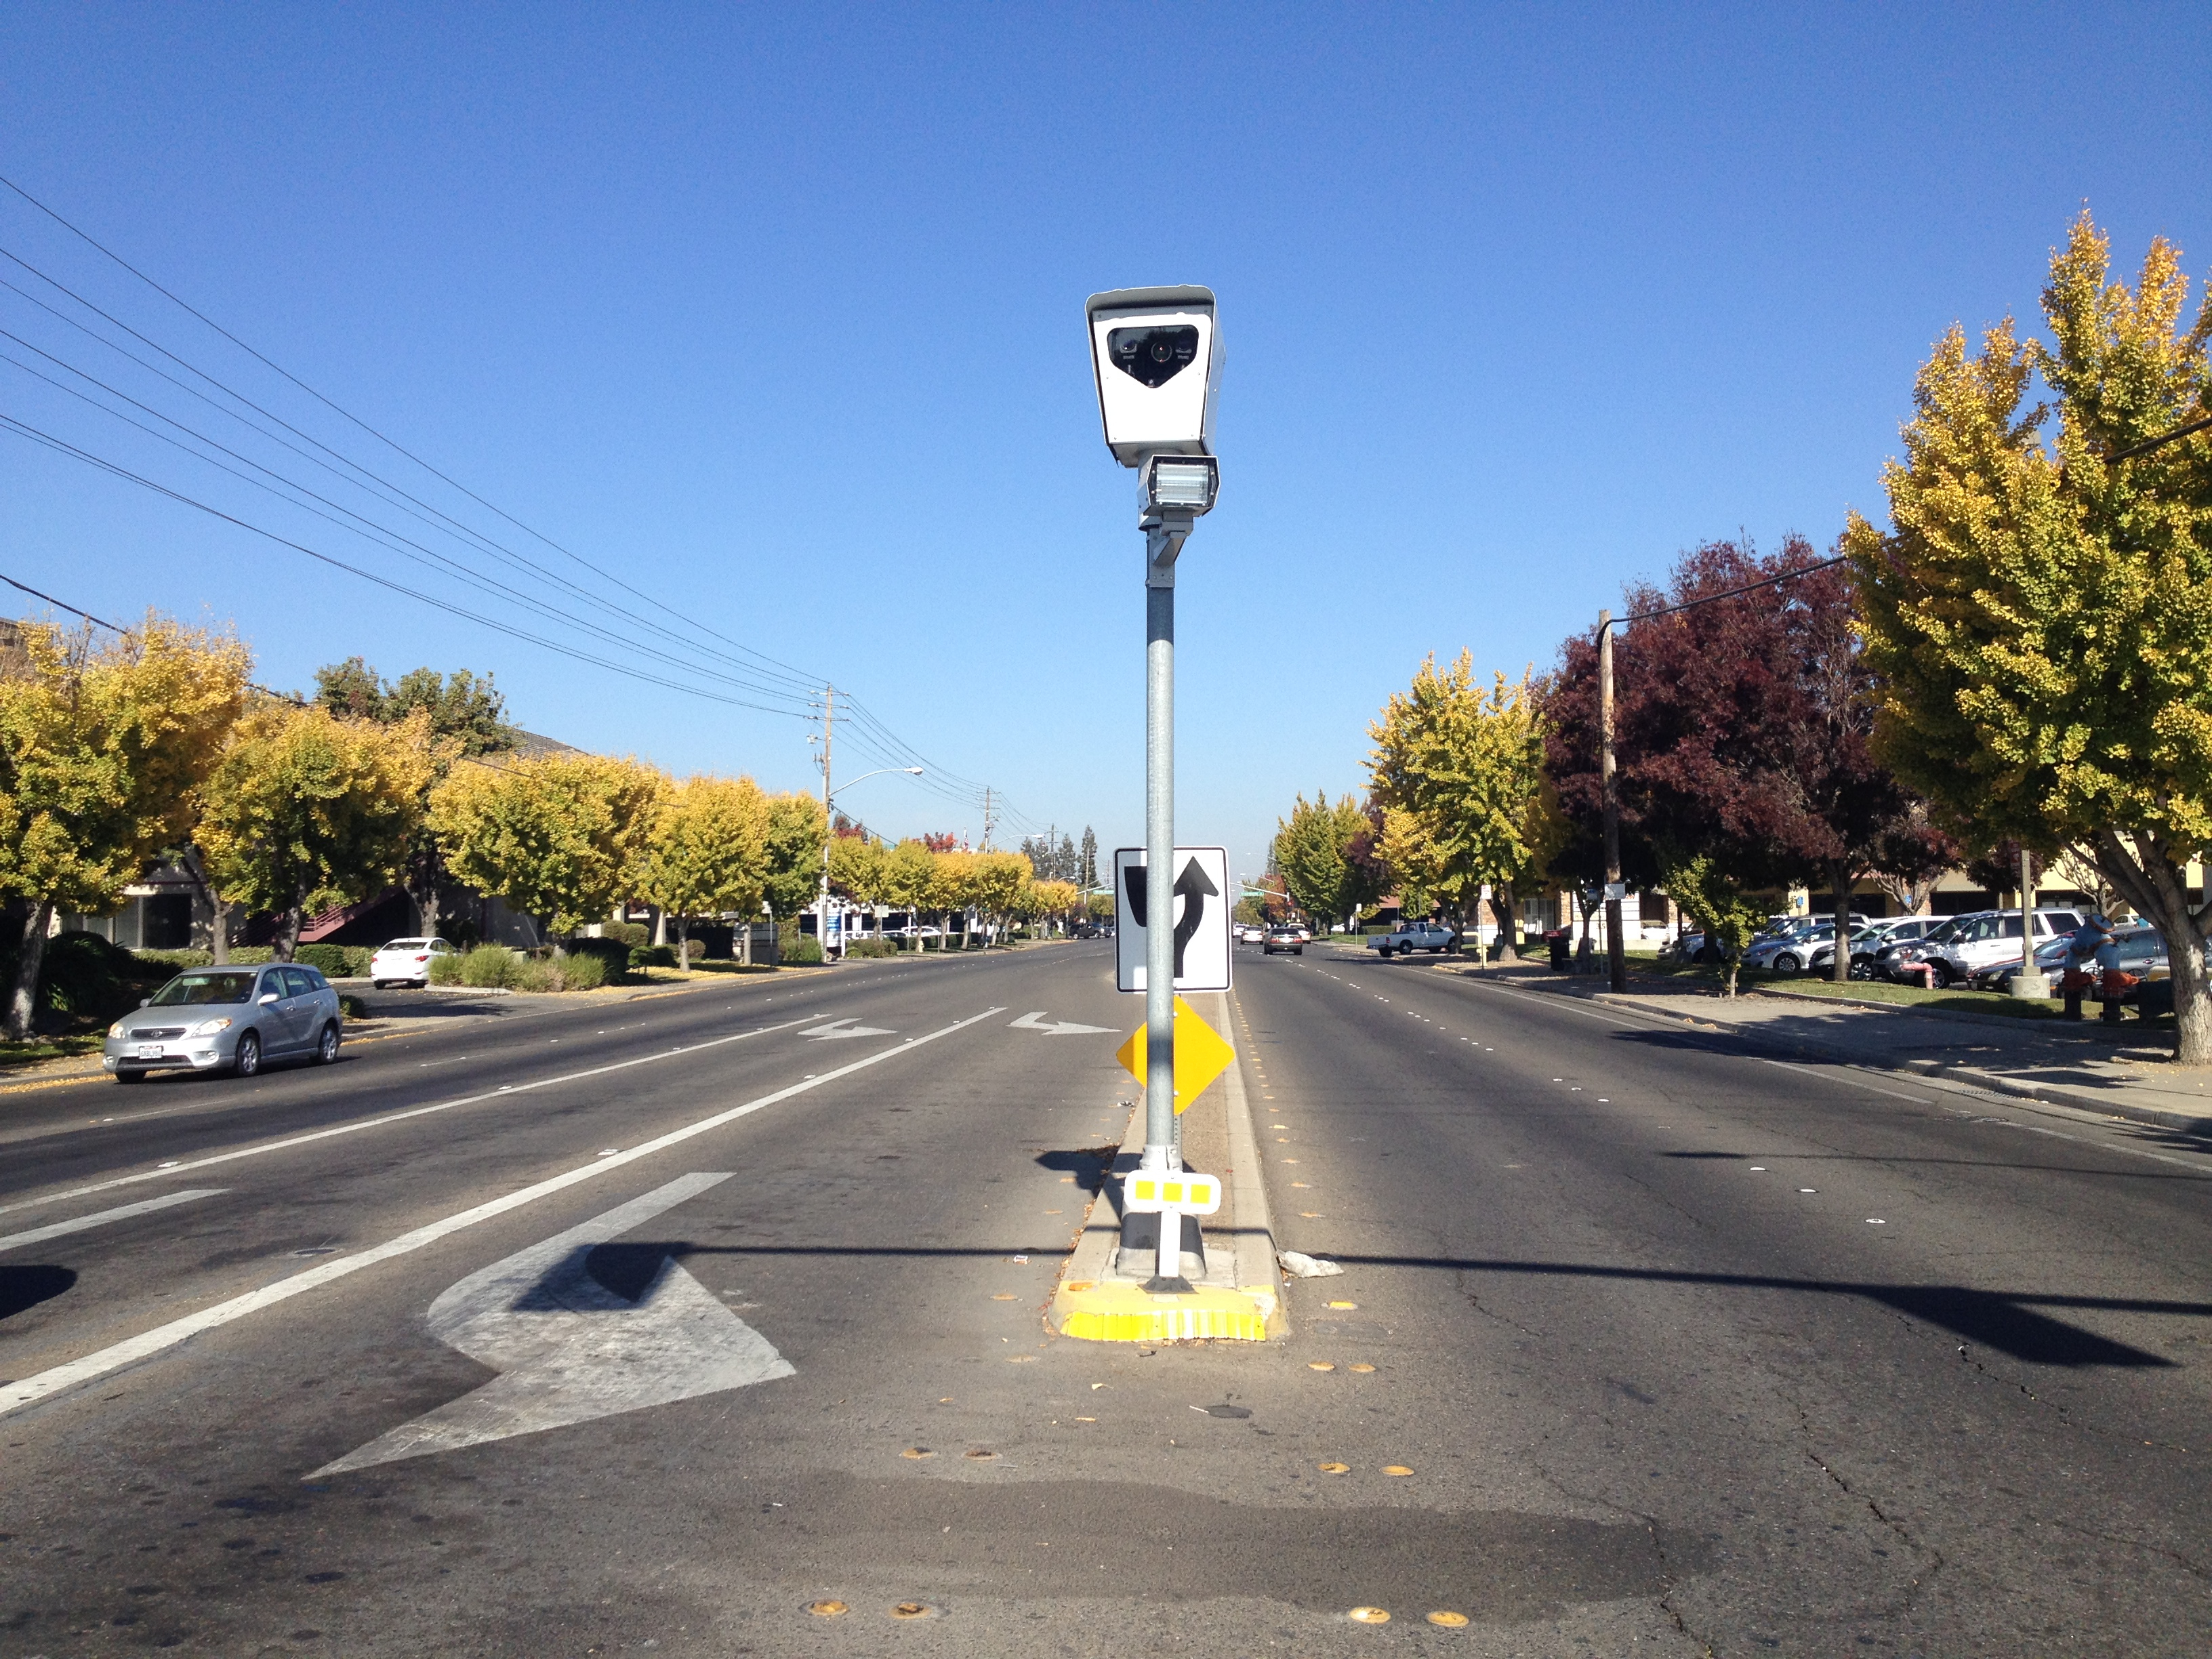 A red light camera at the intersection of Sylvan and Coffee in Modesto, California.